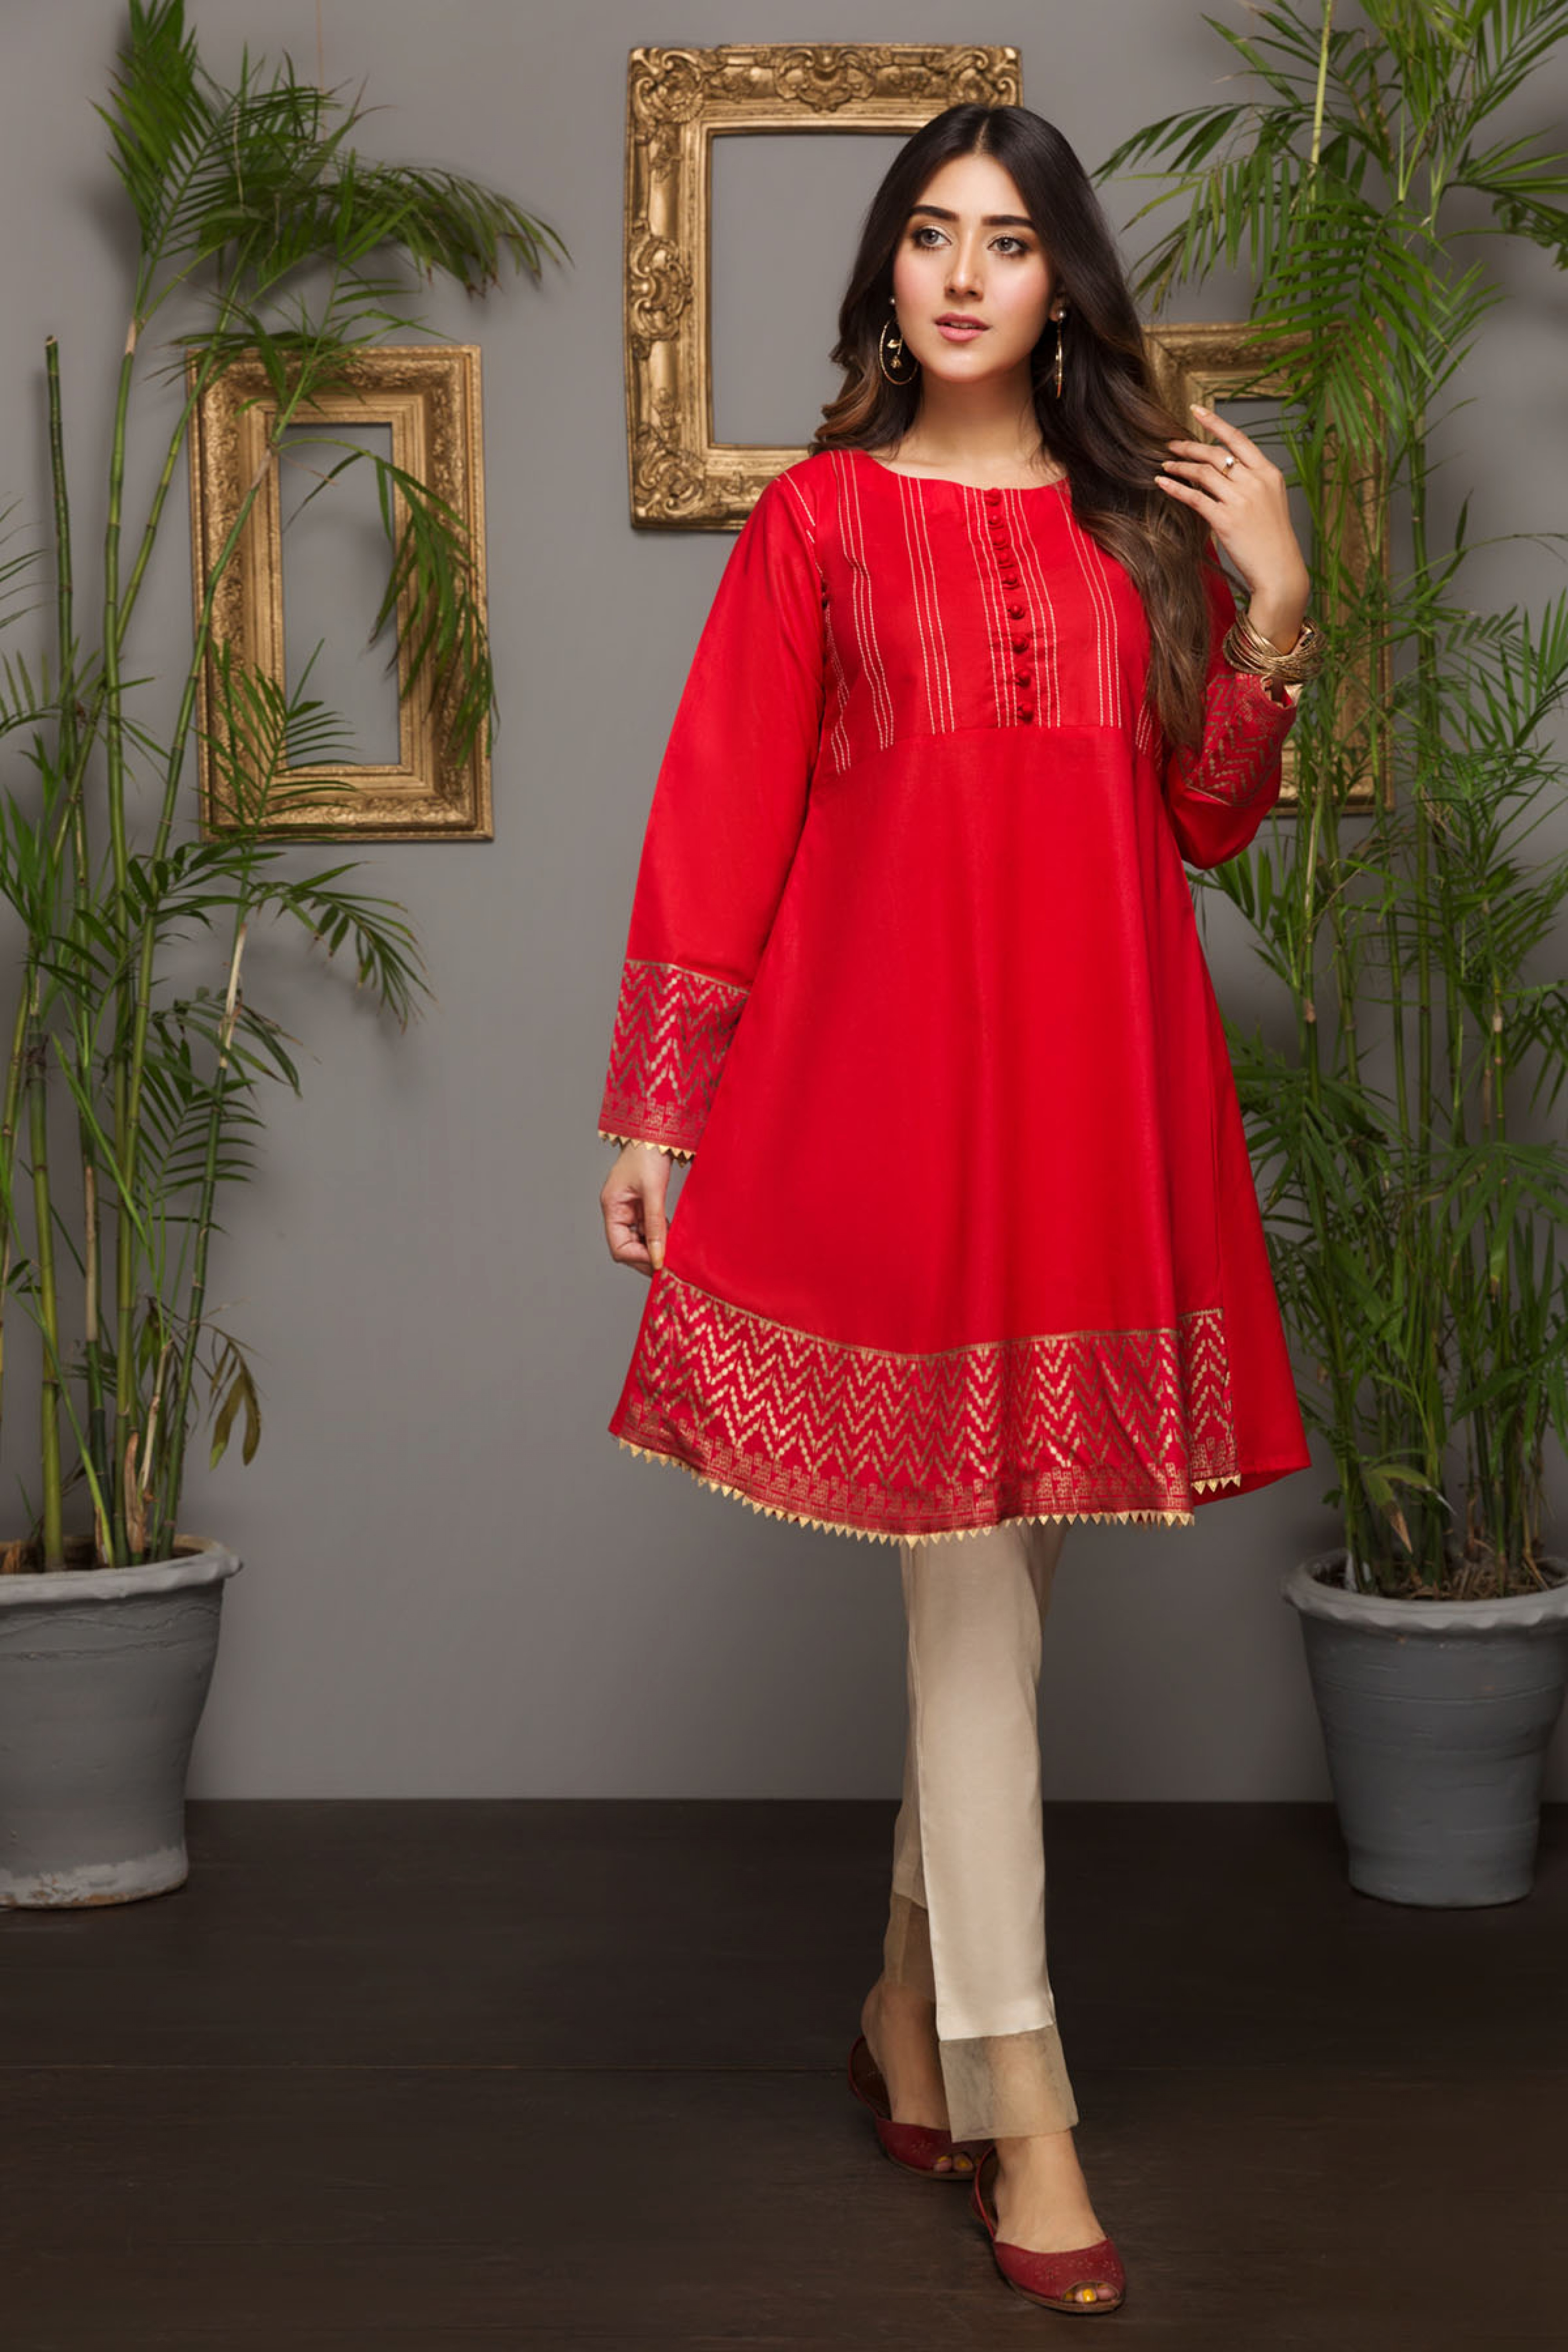 MORNING DEW (EMBROIDERED KURTA)